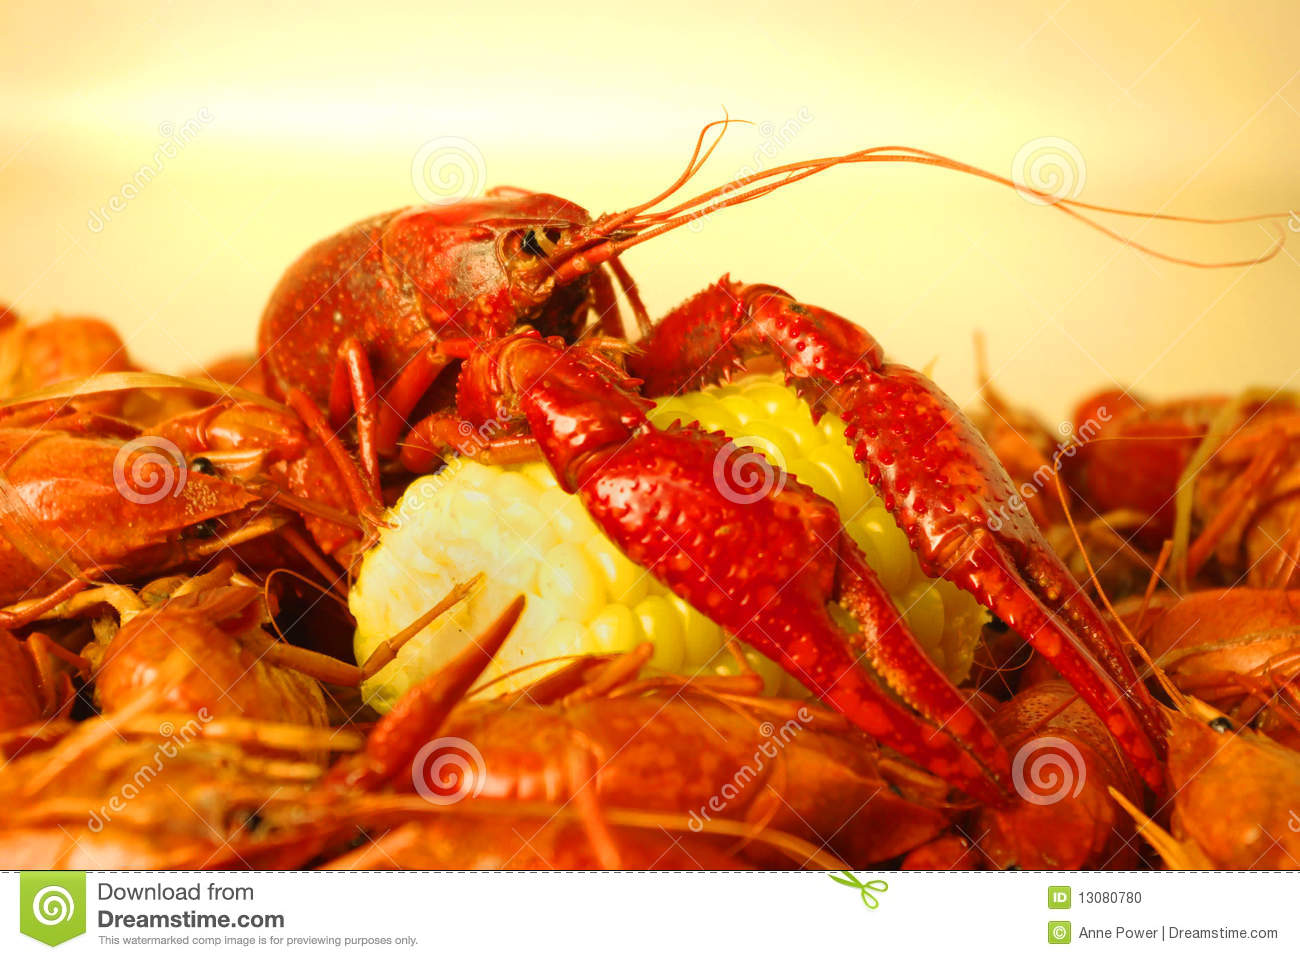 how to cook red claw yabbies